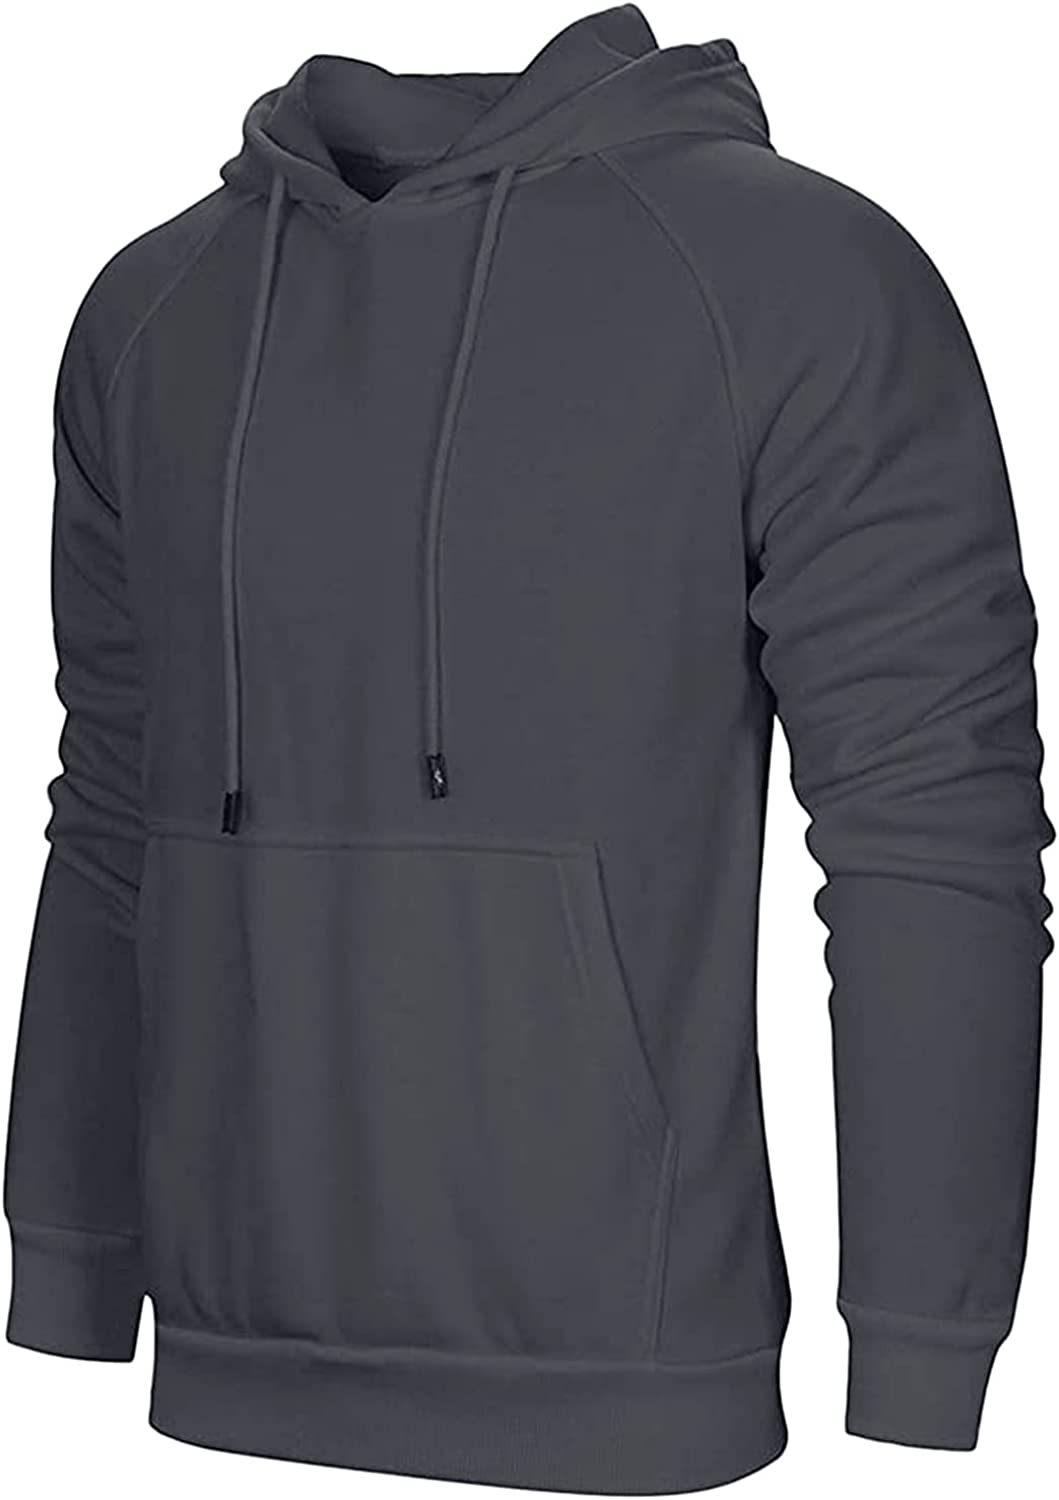 XXBR Hooded Sweatshirts for Mens, Fall Long Sleeve Casual Loose Hoodies Fashion Slim Fit Drawstring Solid Pullover Tops